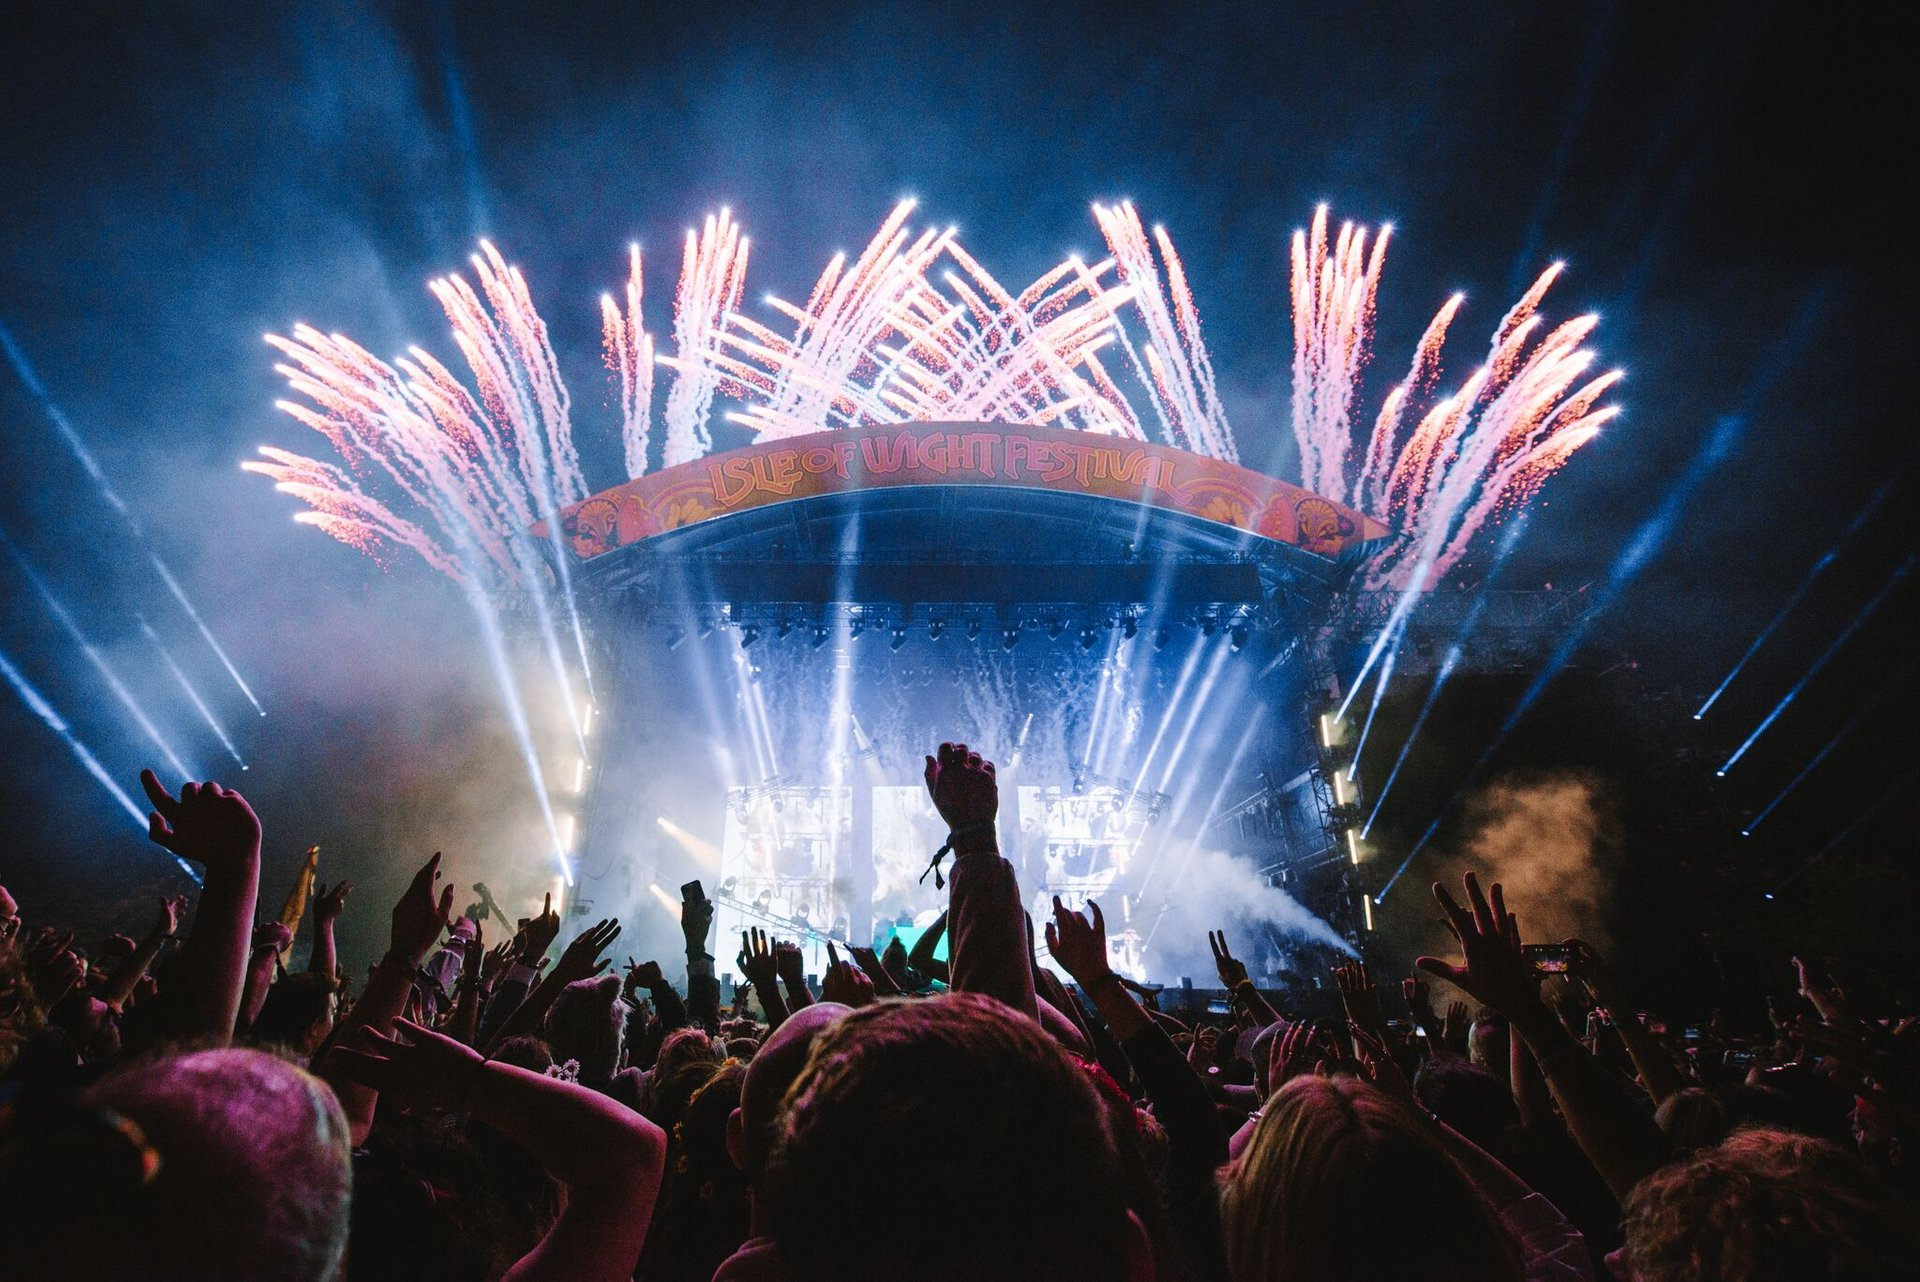 Isle of Wight Festival in England 2020 - Best Time